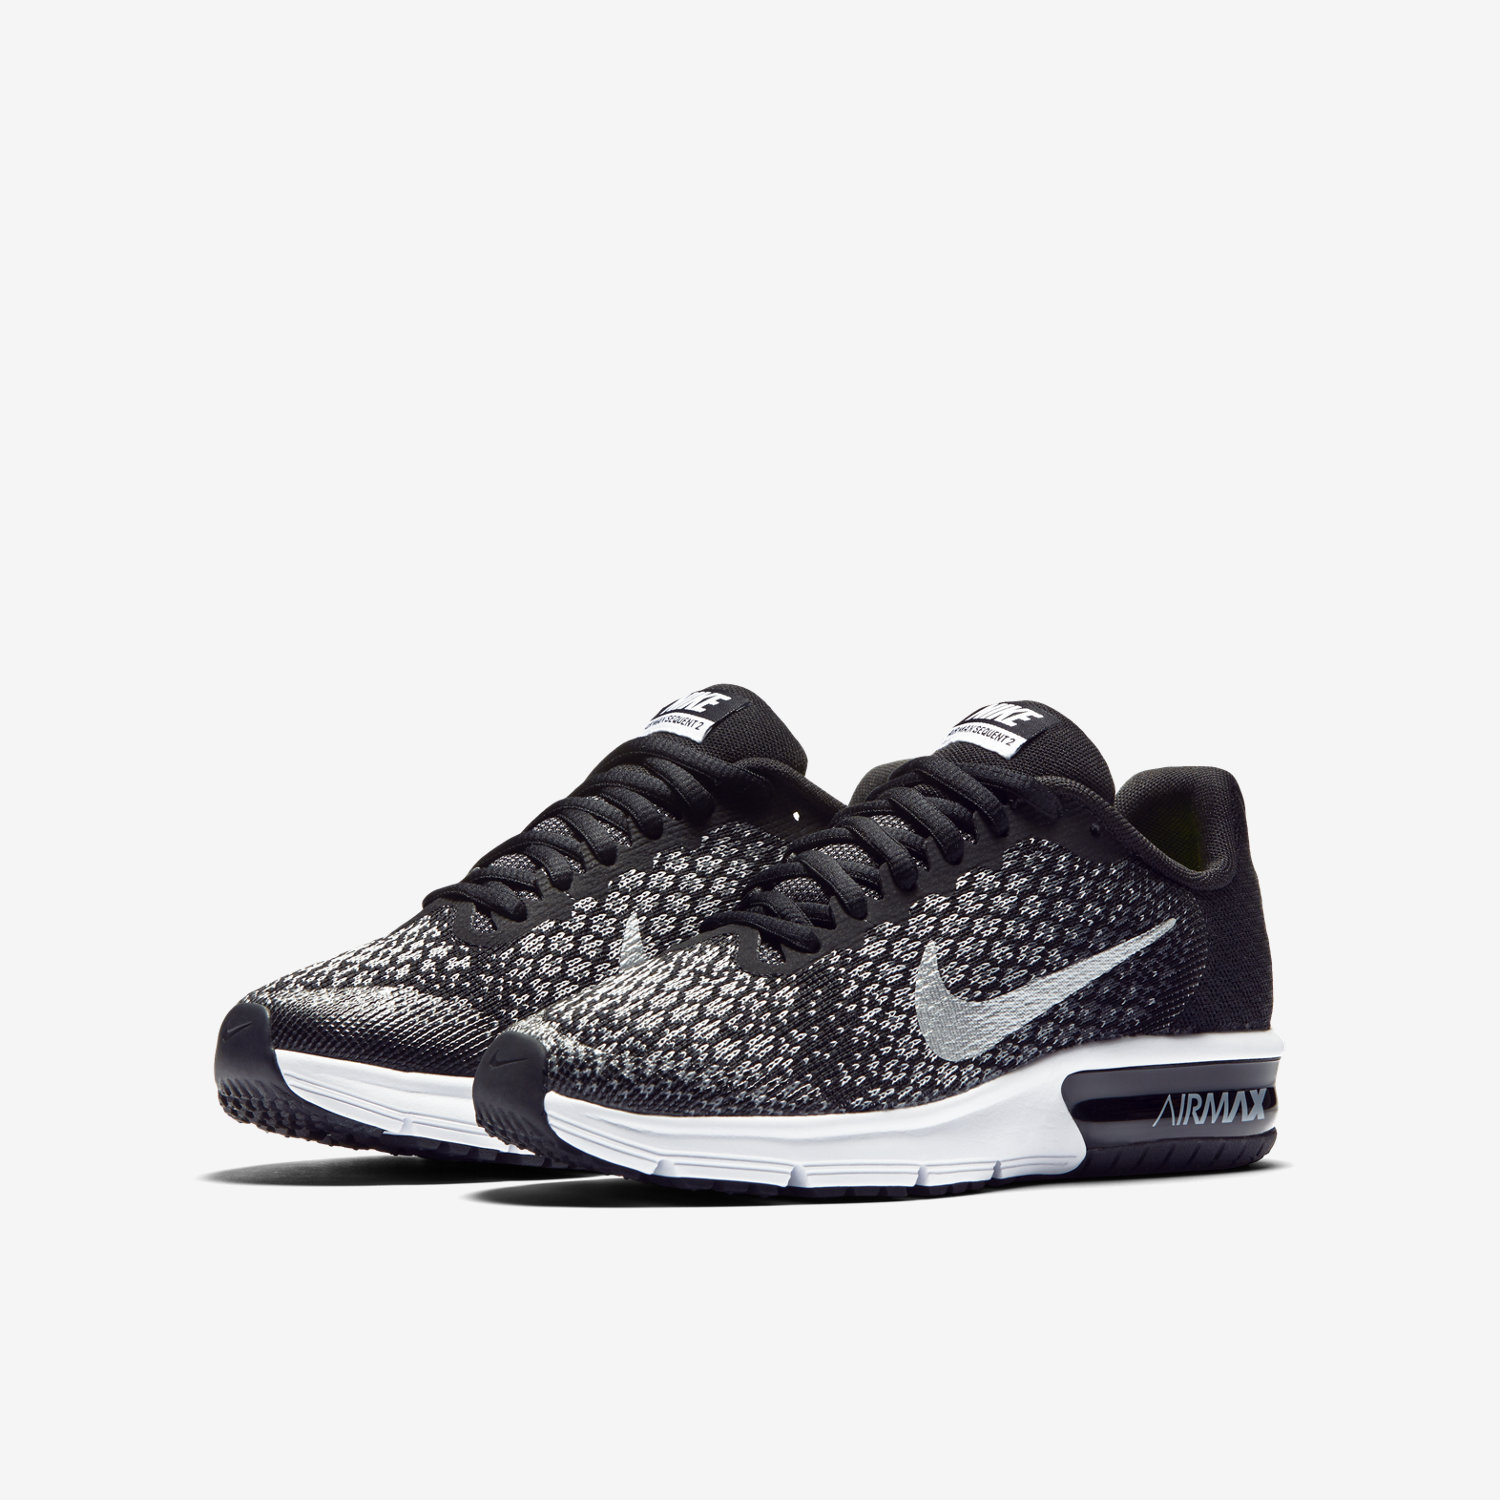 Nike air max torch 4 running shoe - Nike Air Max Sequent 2 Shoes Cheap Nike Air Max Sequent 2 Nike Air Max